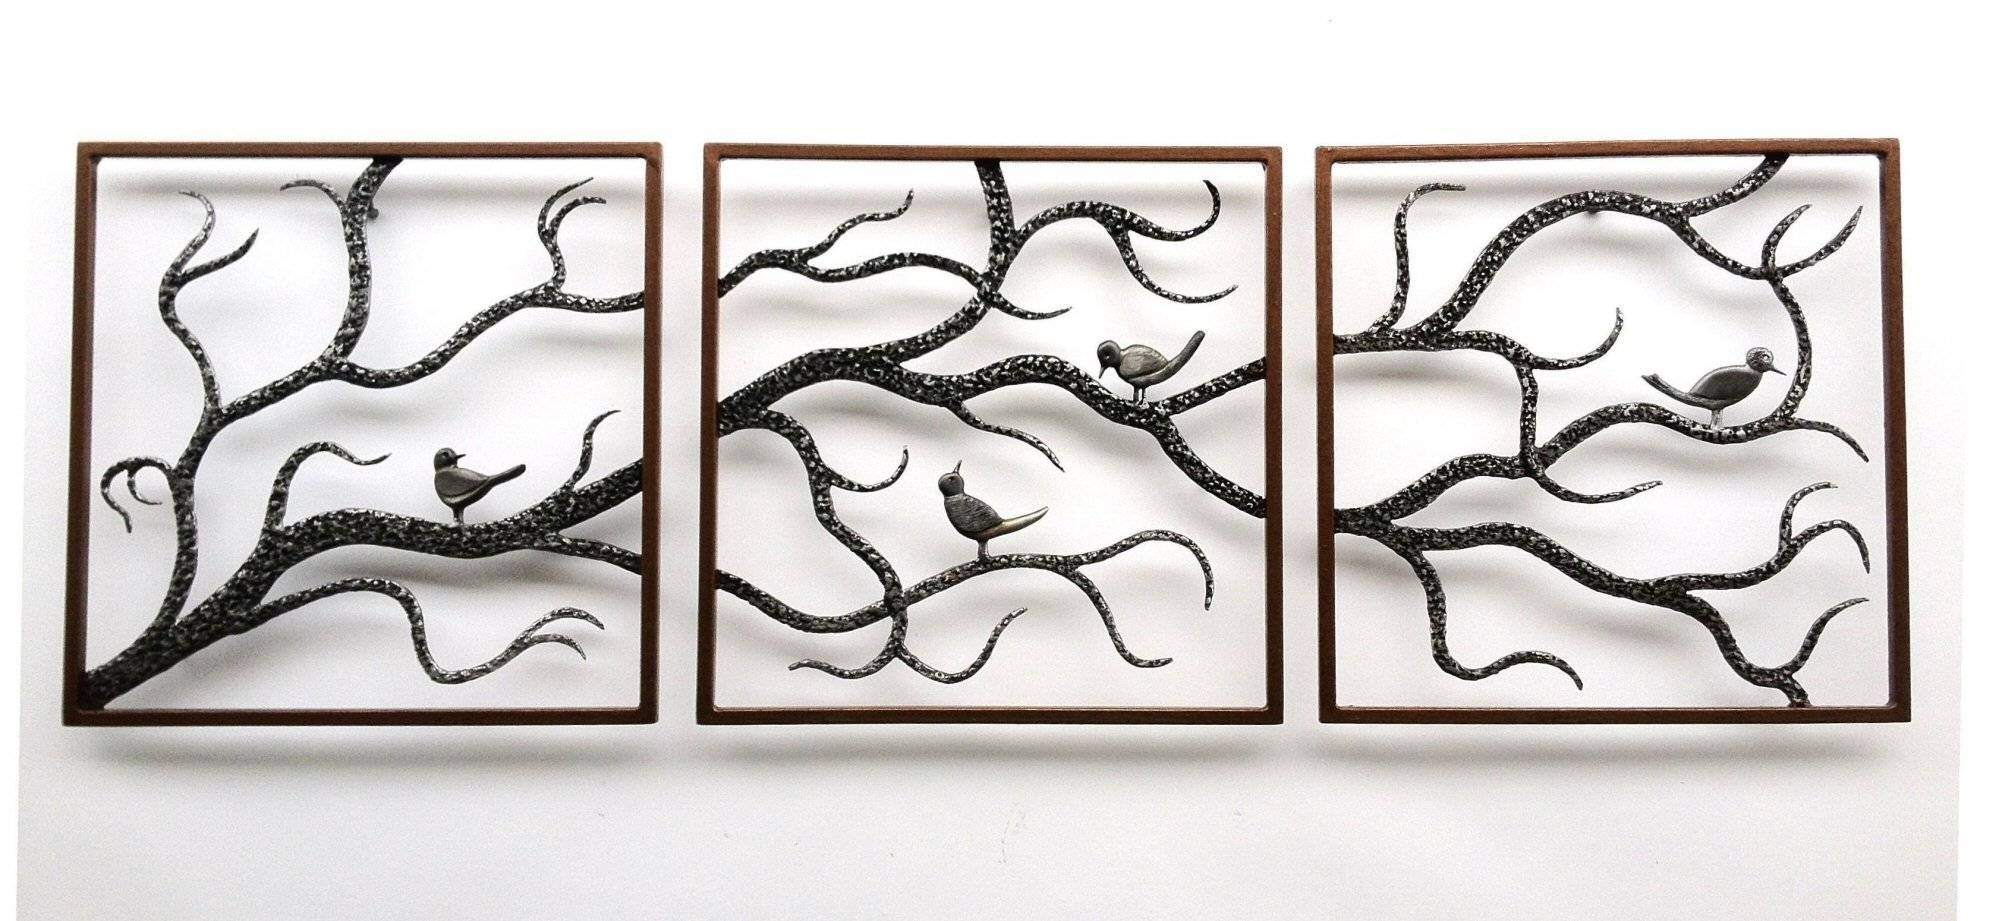 Wall Art Designs: Metal Wall Art Trees Birch Three Framed Cute Pertaining To Most Recent Home Metal Wall Art (View 3 of 20)